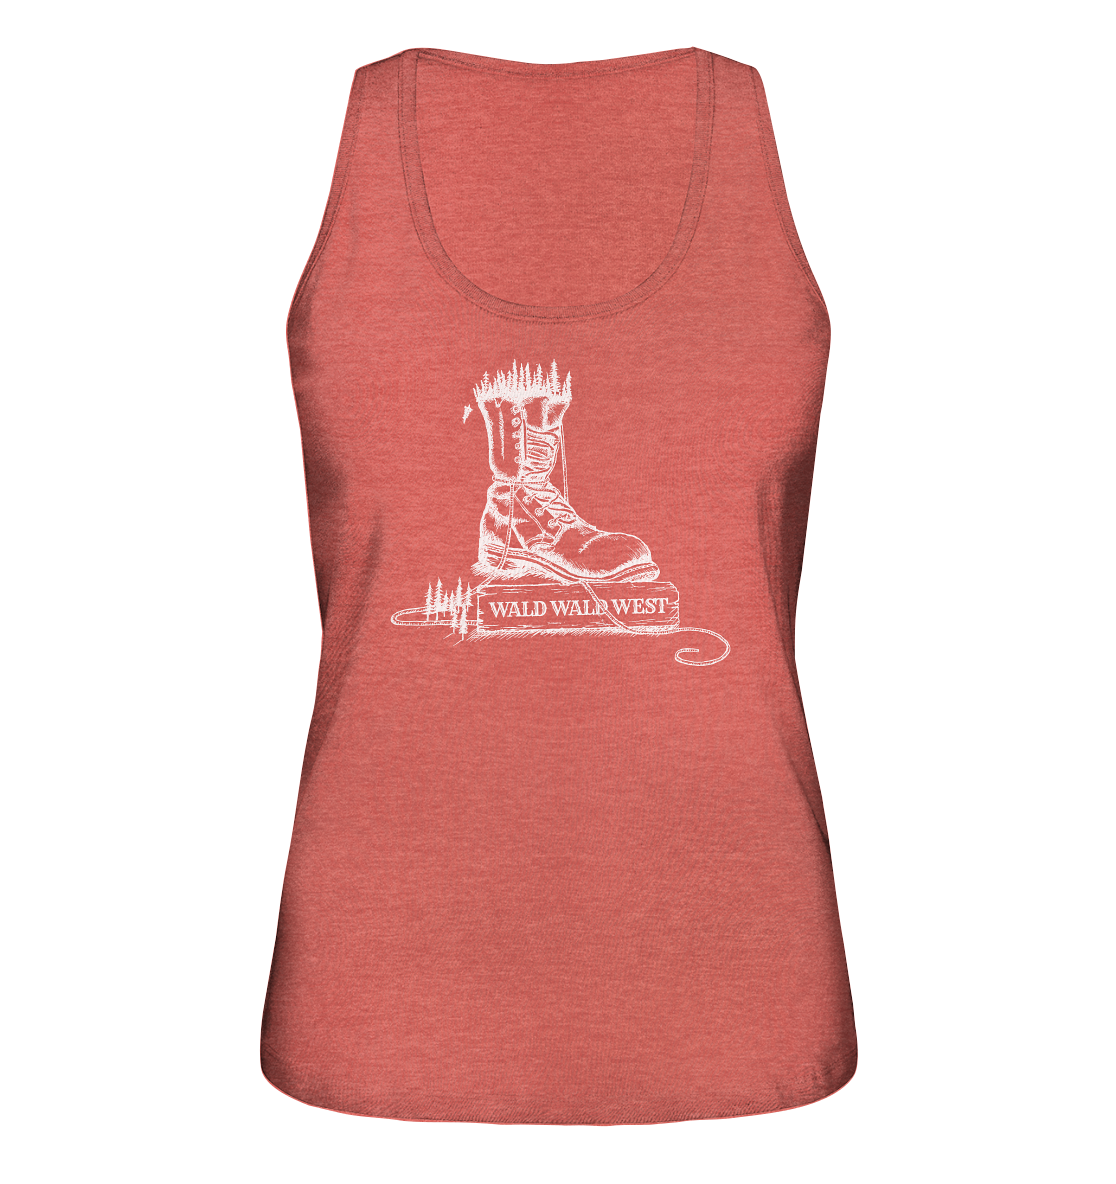 front-ladies-organic-tank-top-e05651-1116x-1.png